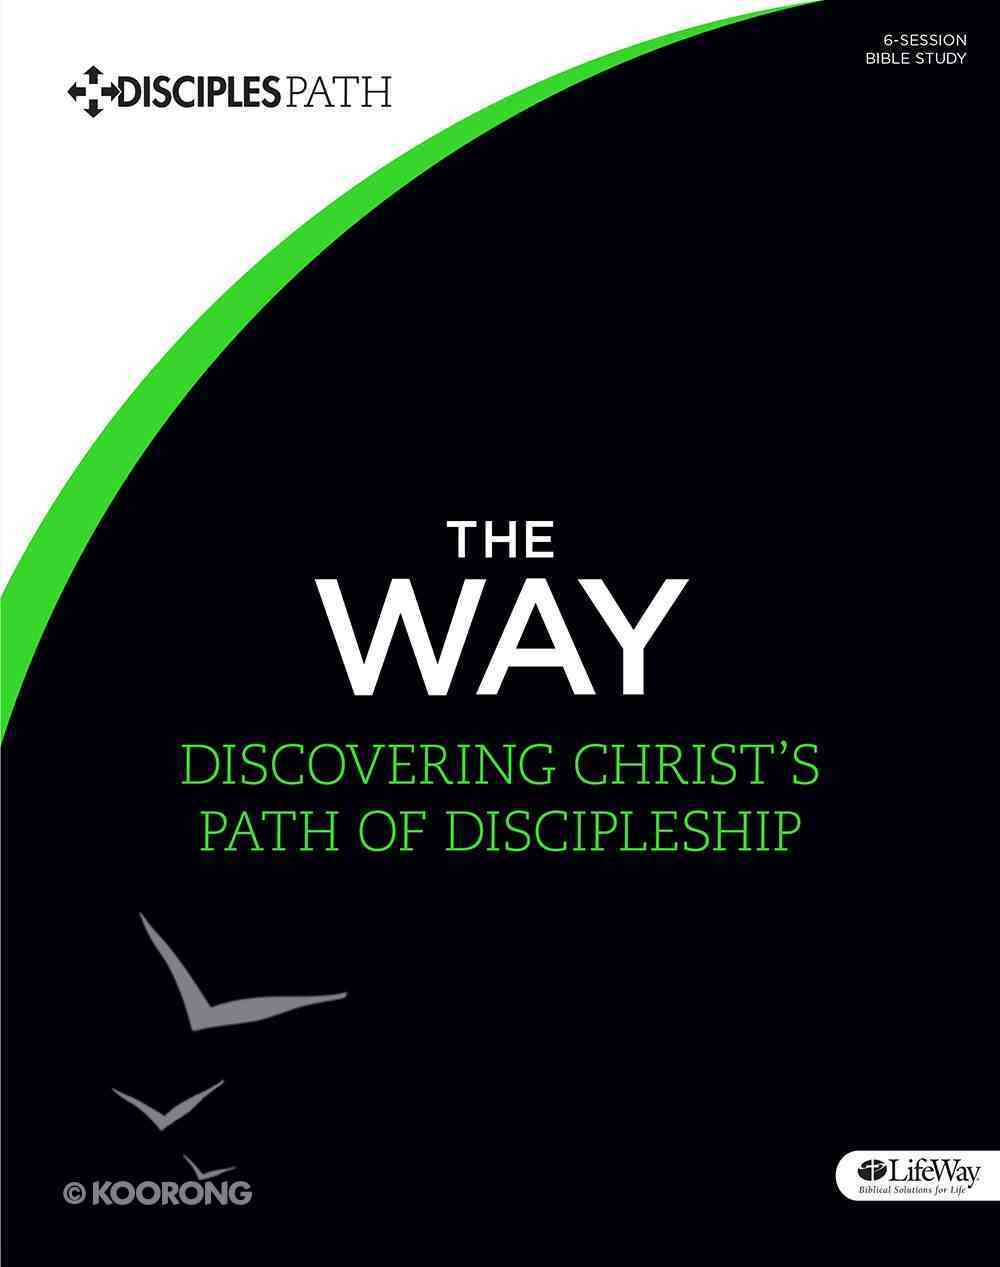 The Way (Bible Study Book) (Disciple's Path Series) Paperback